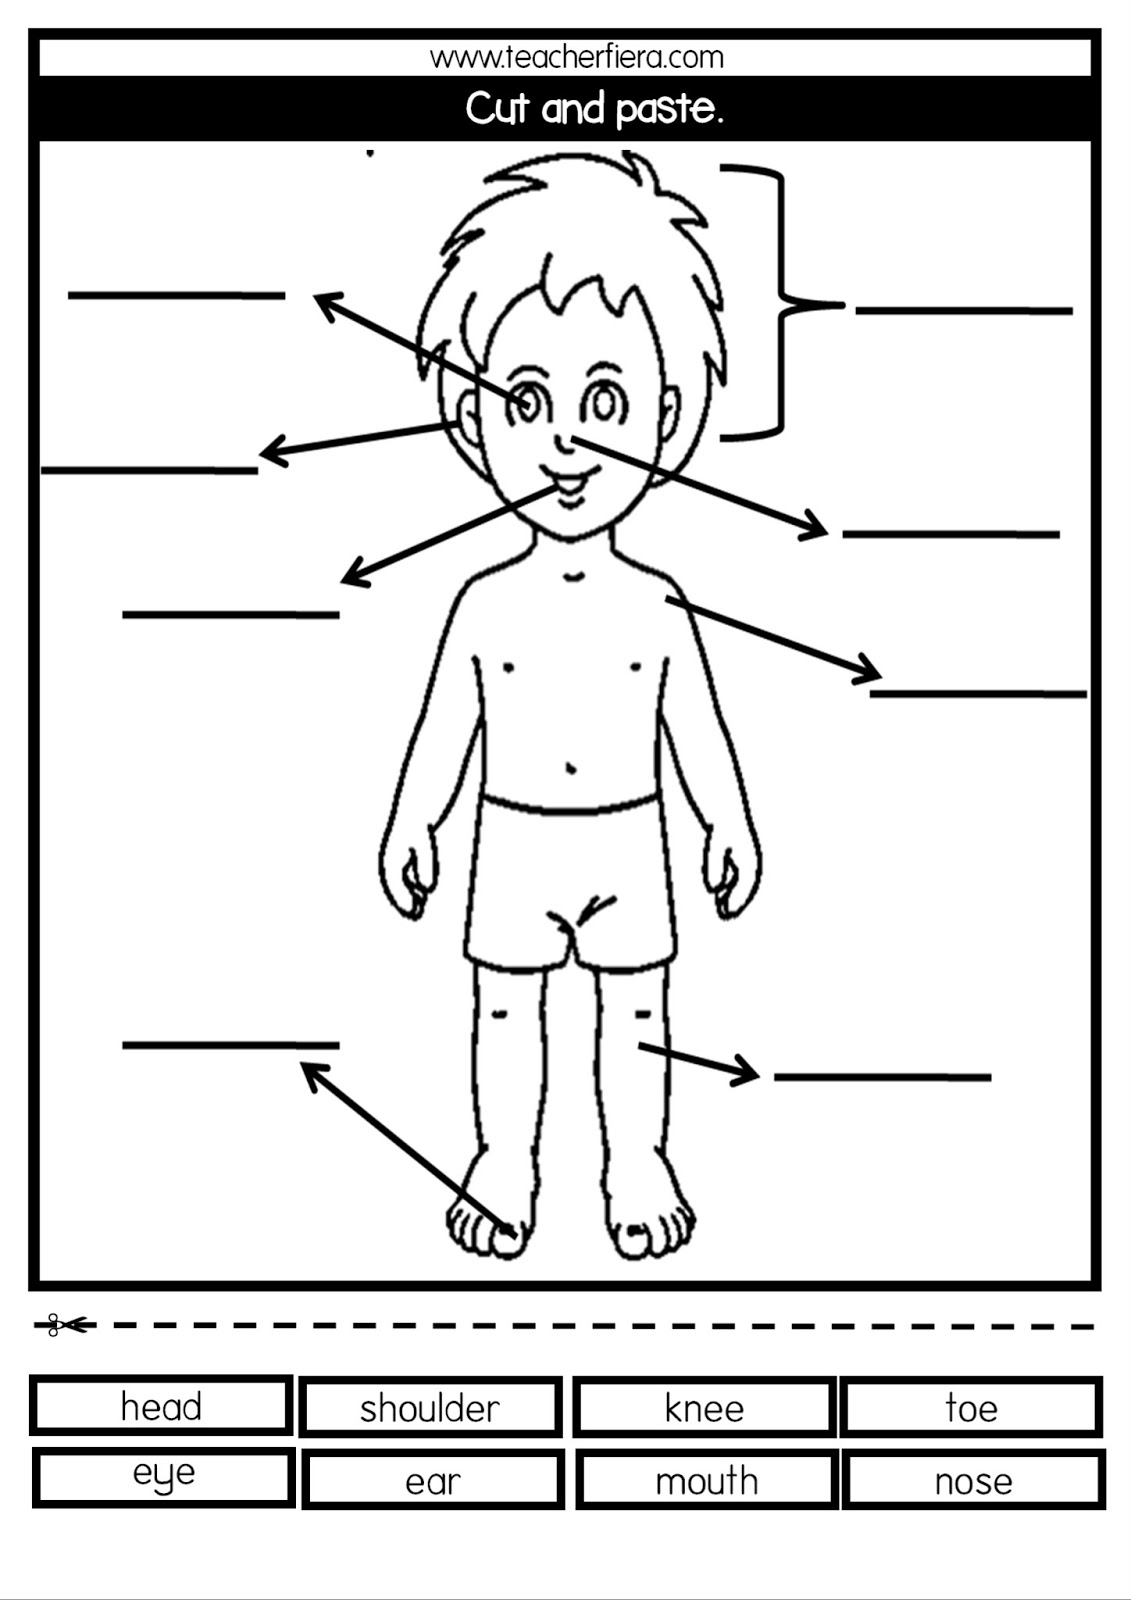 Teacherfiera Parts Of Body Flashcards S Amp Worksheets